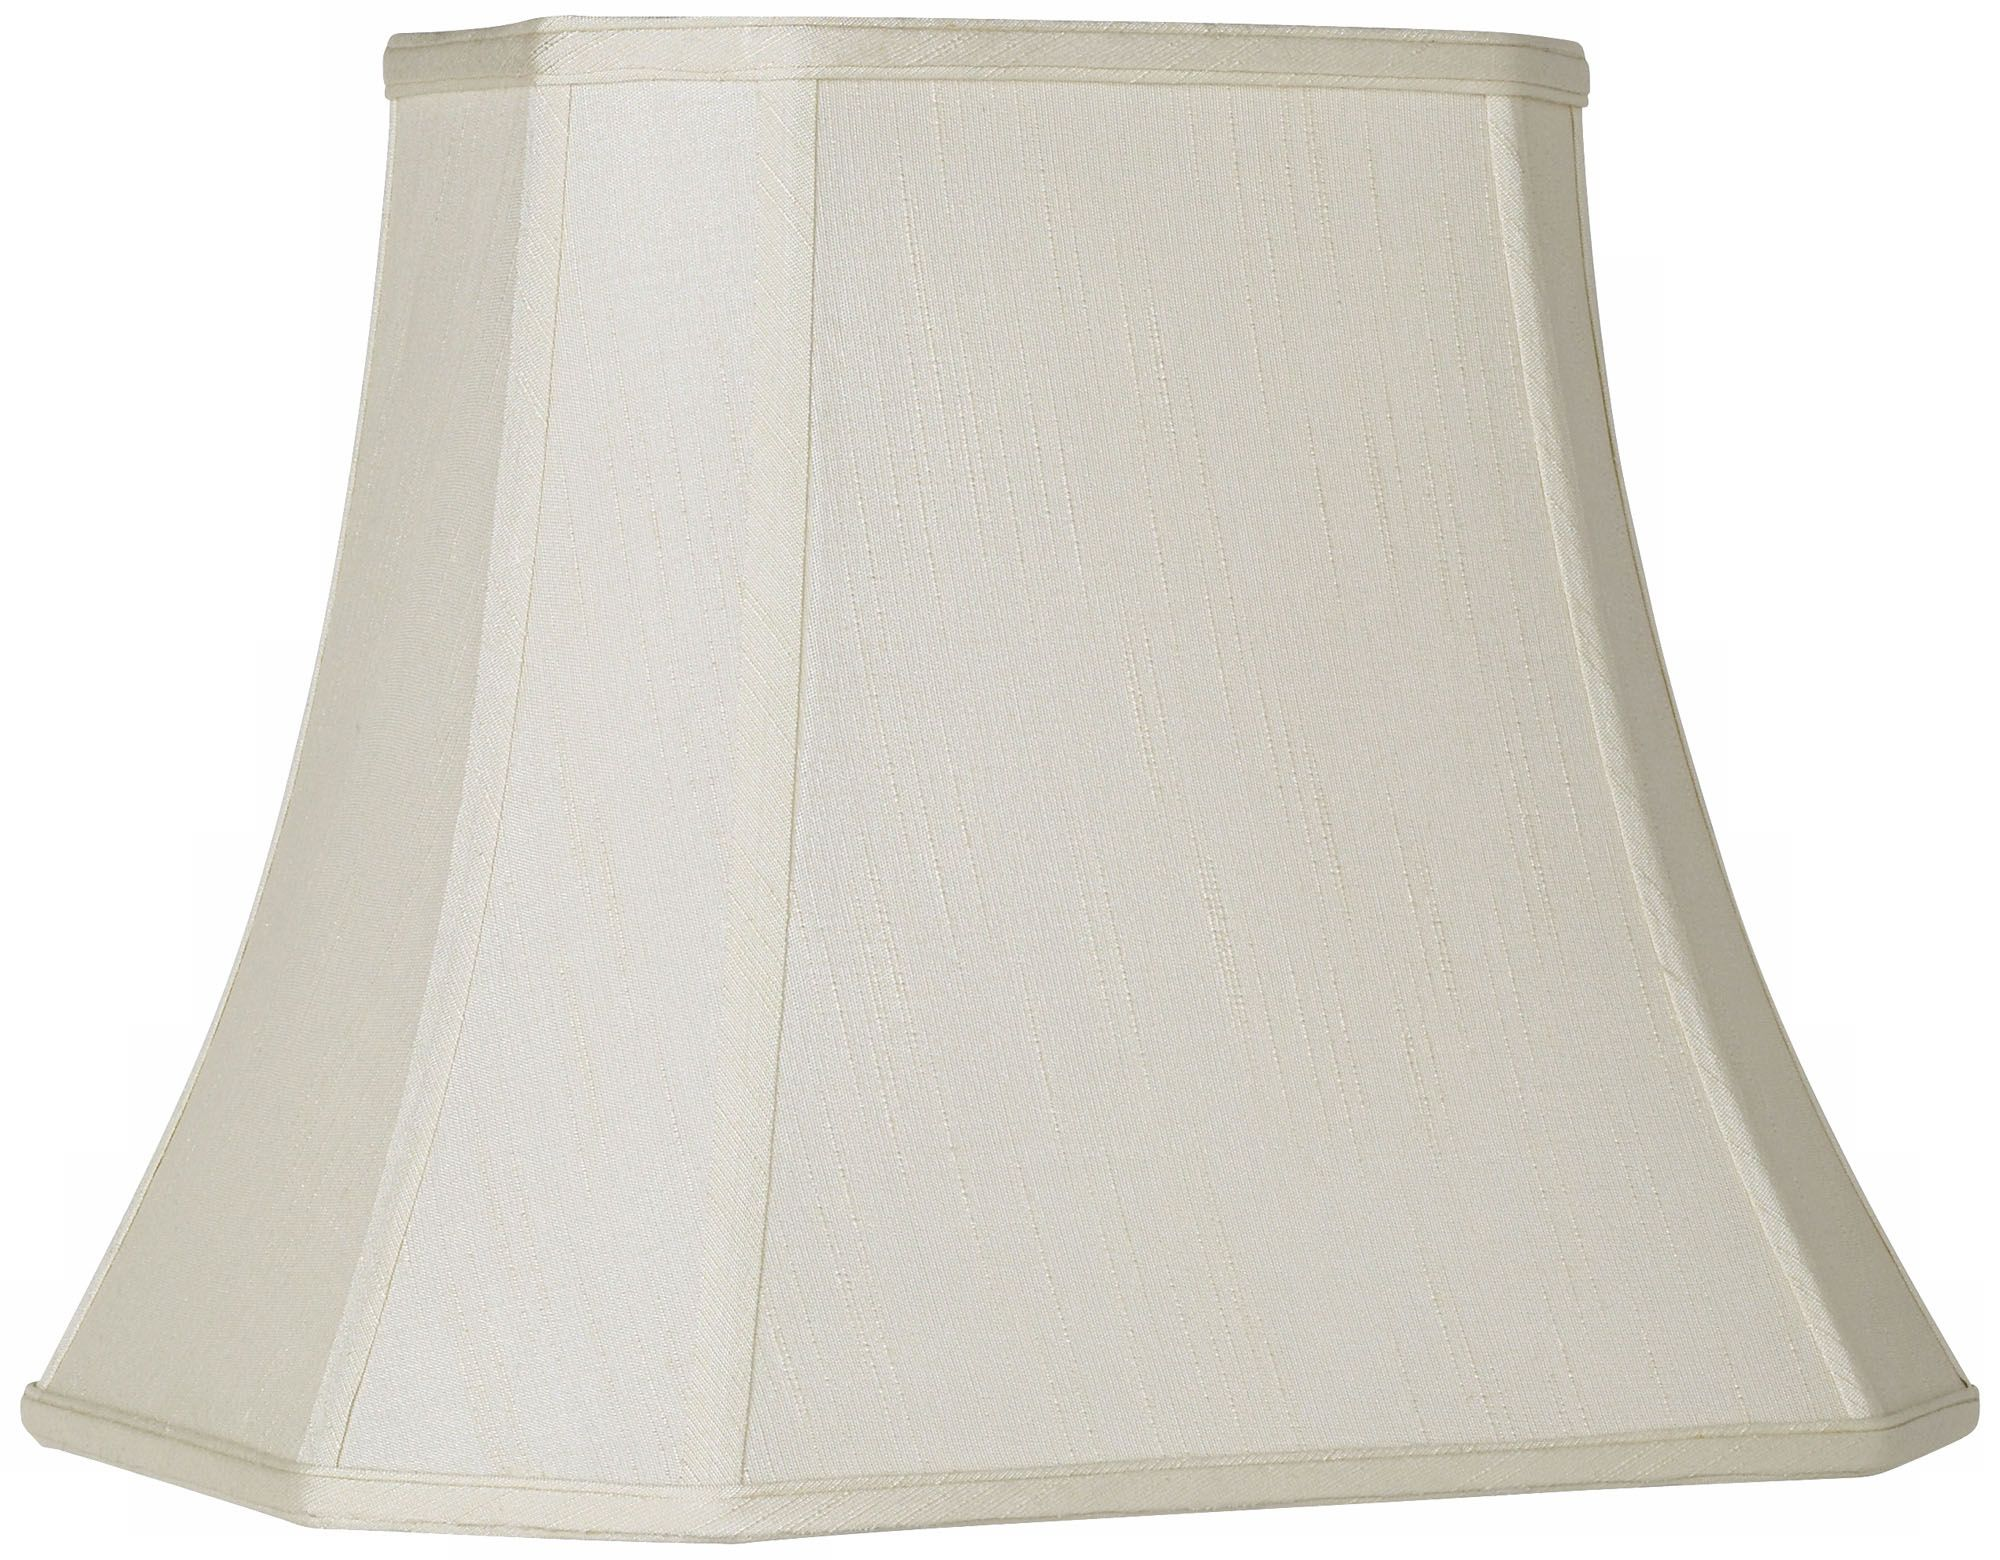 imperial creme rectangle cut corner shade 10x16x13 spider - Rectangular Lamp Shades